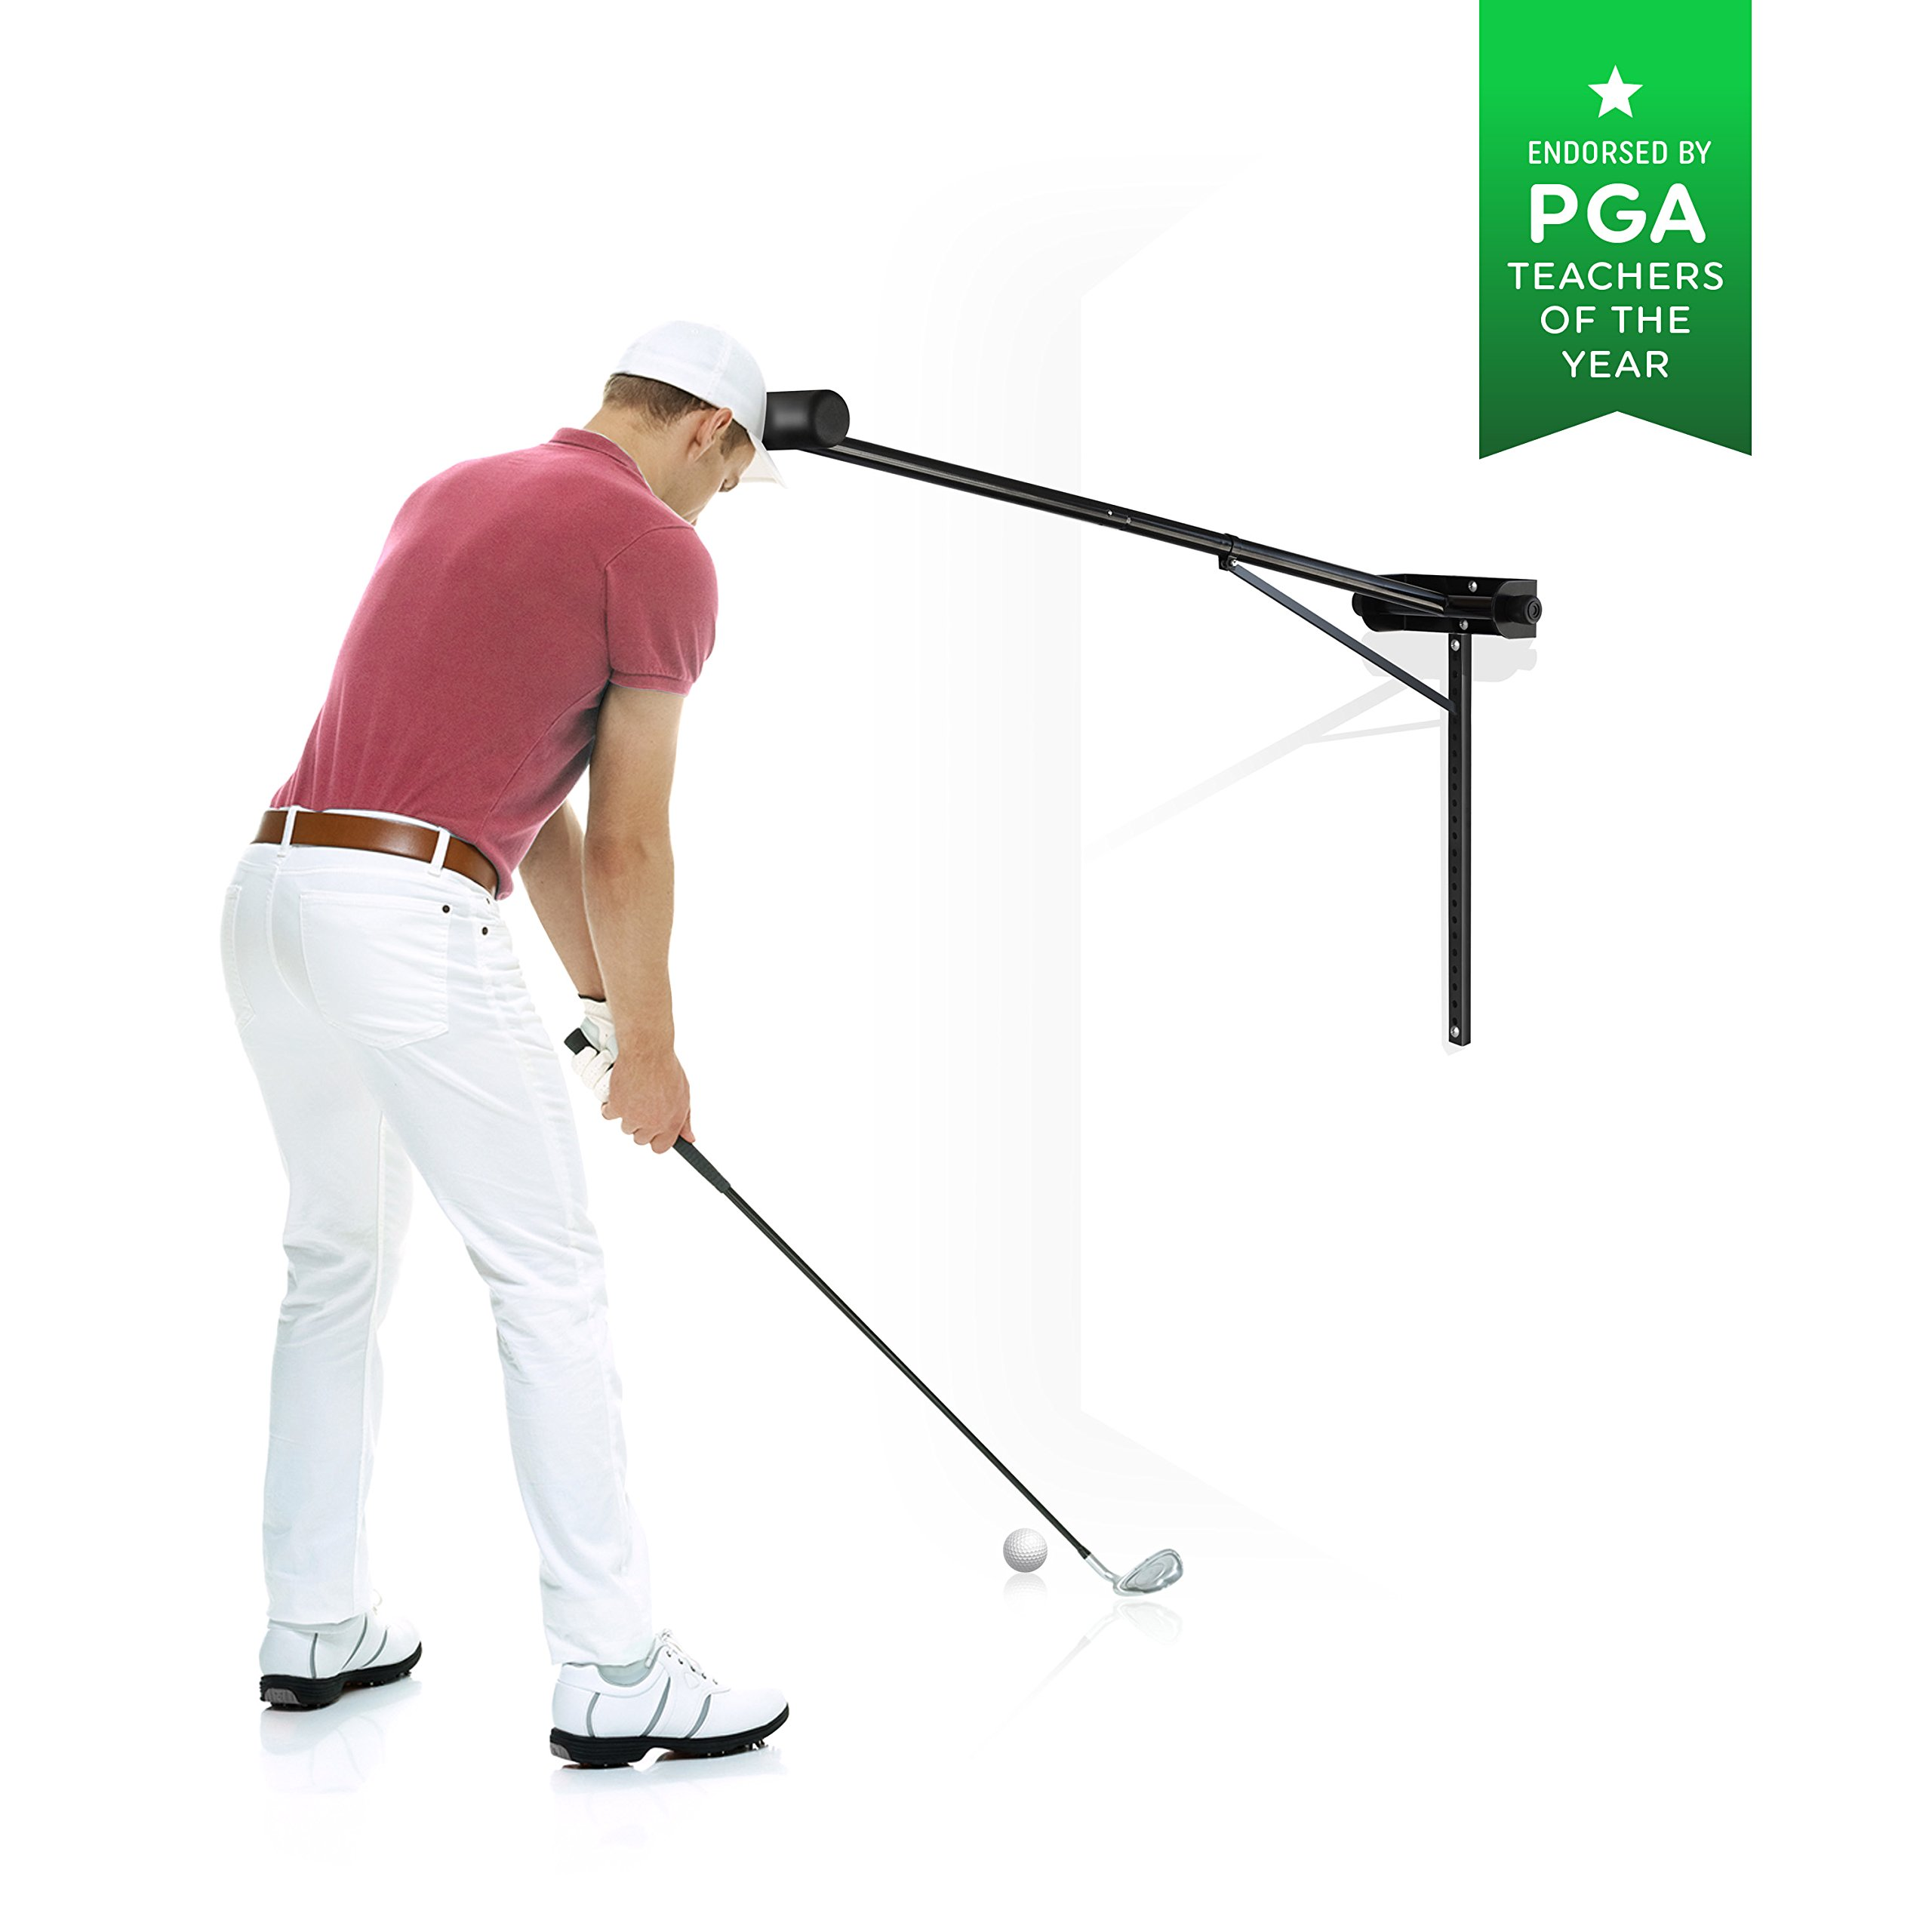 Golf Swing Trainer PRO-HEAD - Wall or Tree Golf Training Aid Equipment for All Golfers - Posture Correcting Tool - Fix and Keep a Steady Head, Maintain Spine Angle - Practice Indoor & Outdoor by PRO-HEAD (Image #1)